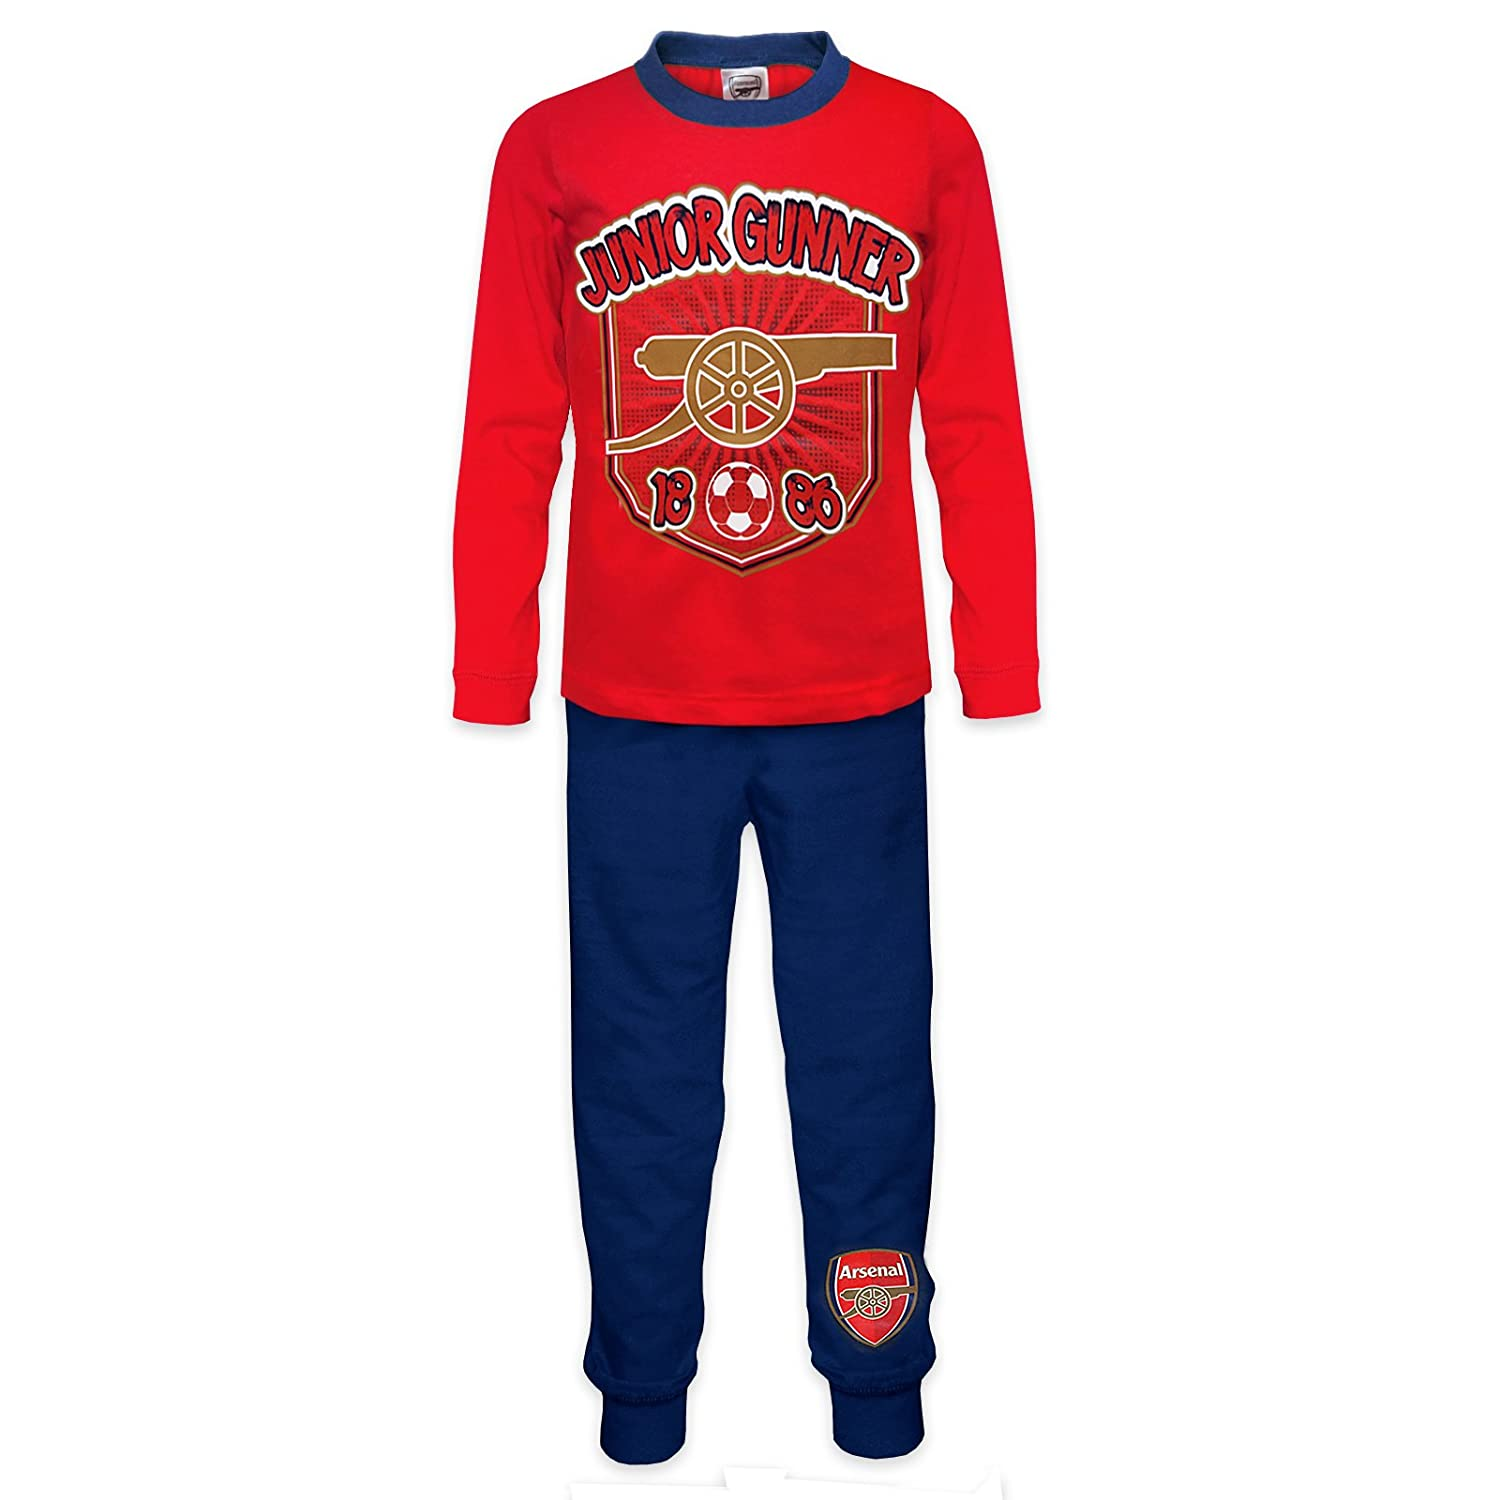 Arsenal FC Official Soccer Gift Boys Toddler Kids Pajamas 3-4 Years